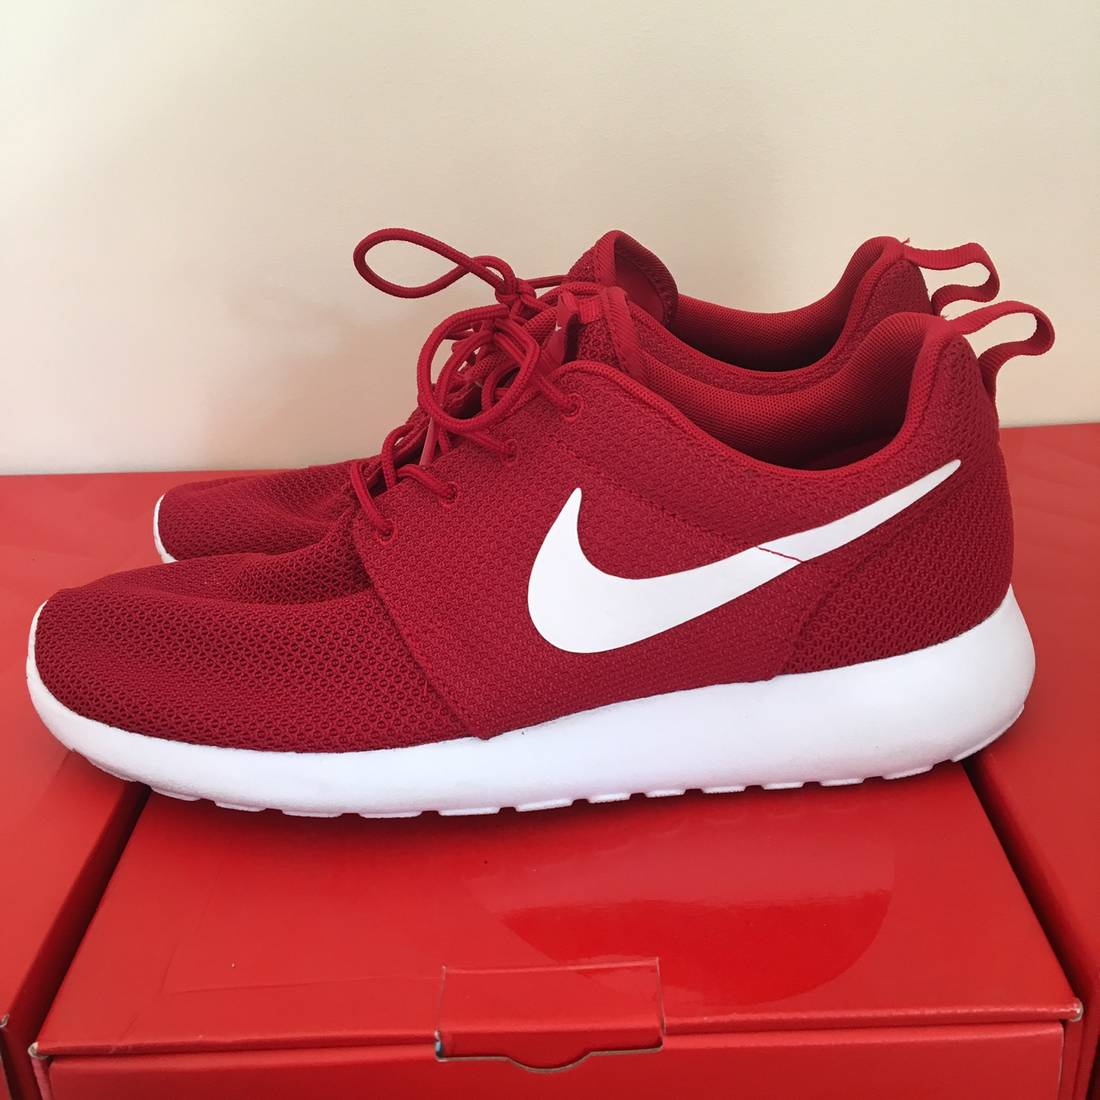 8f97288d003c3 coupon for nike nike roshe one gym red white size 10 vnds size us 10 eu